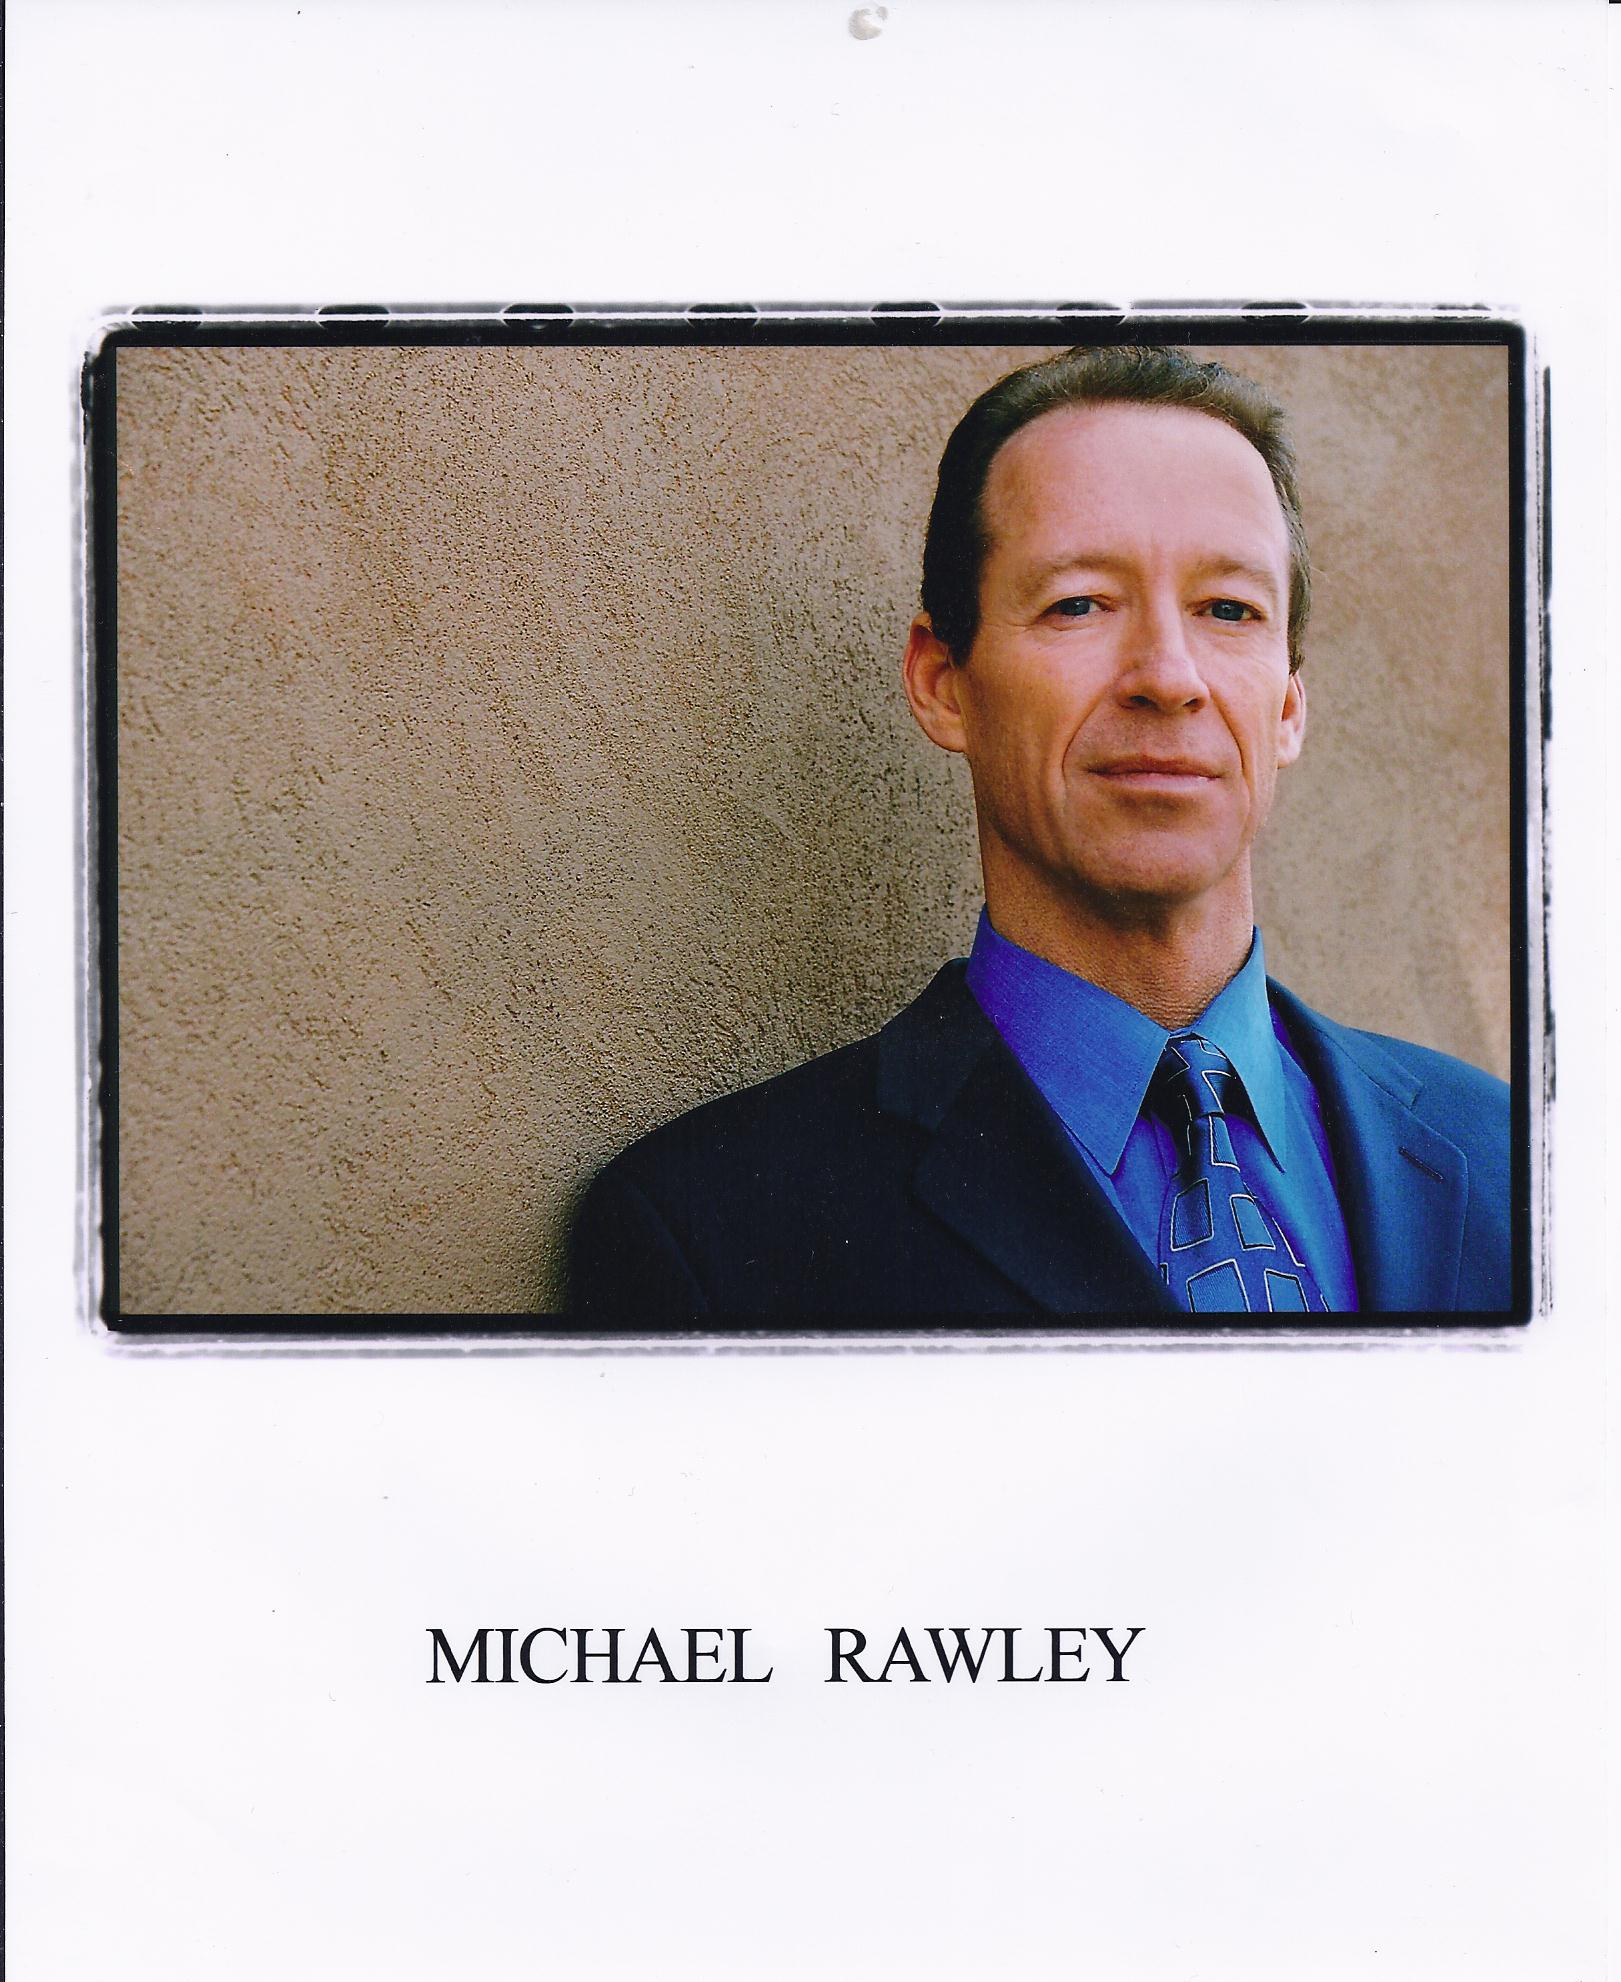 Michael Rawley